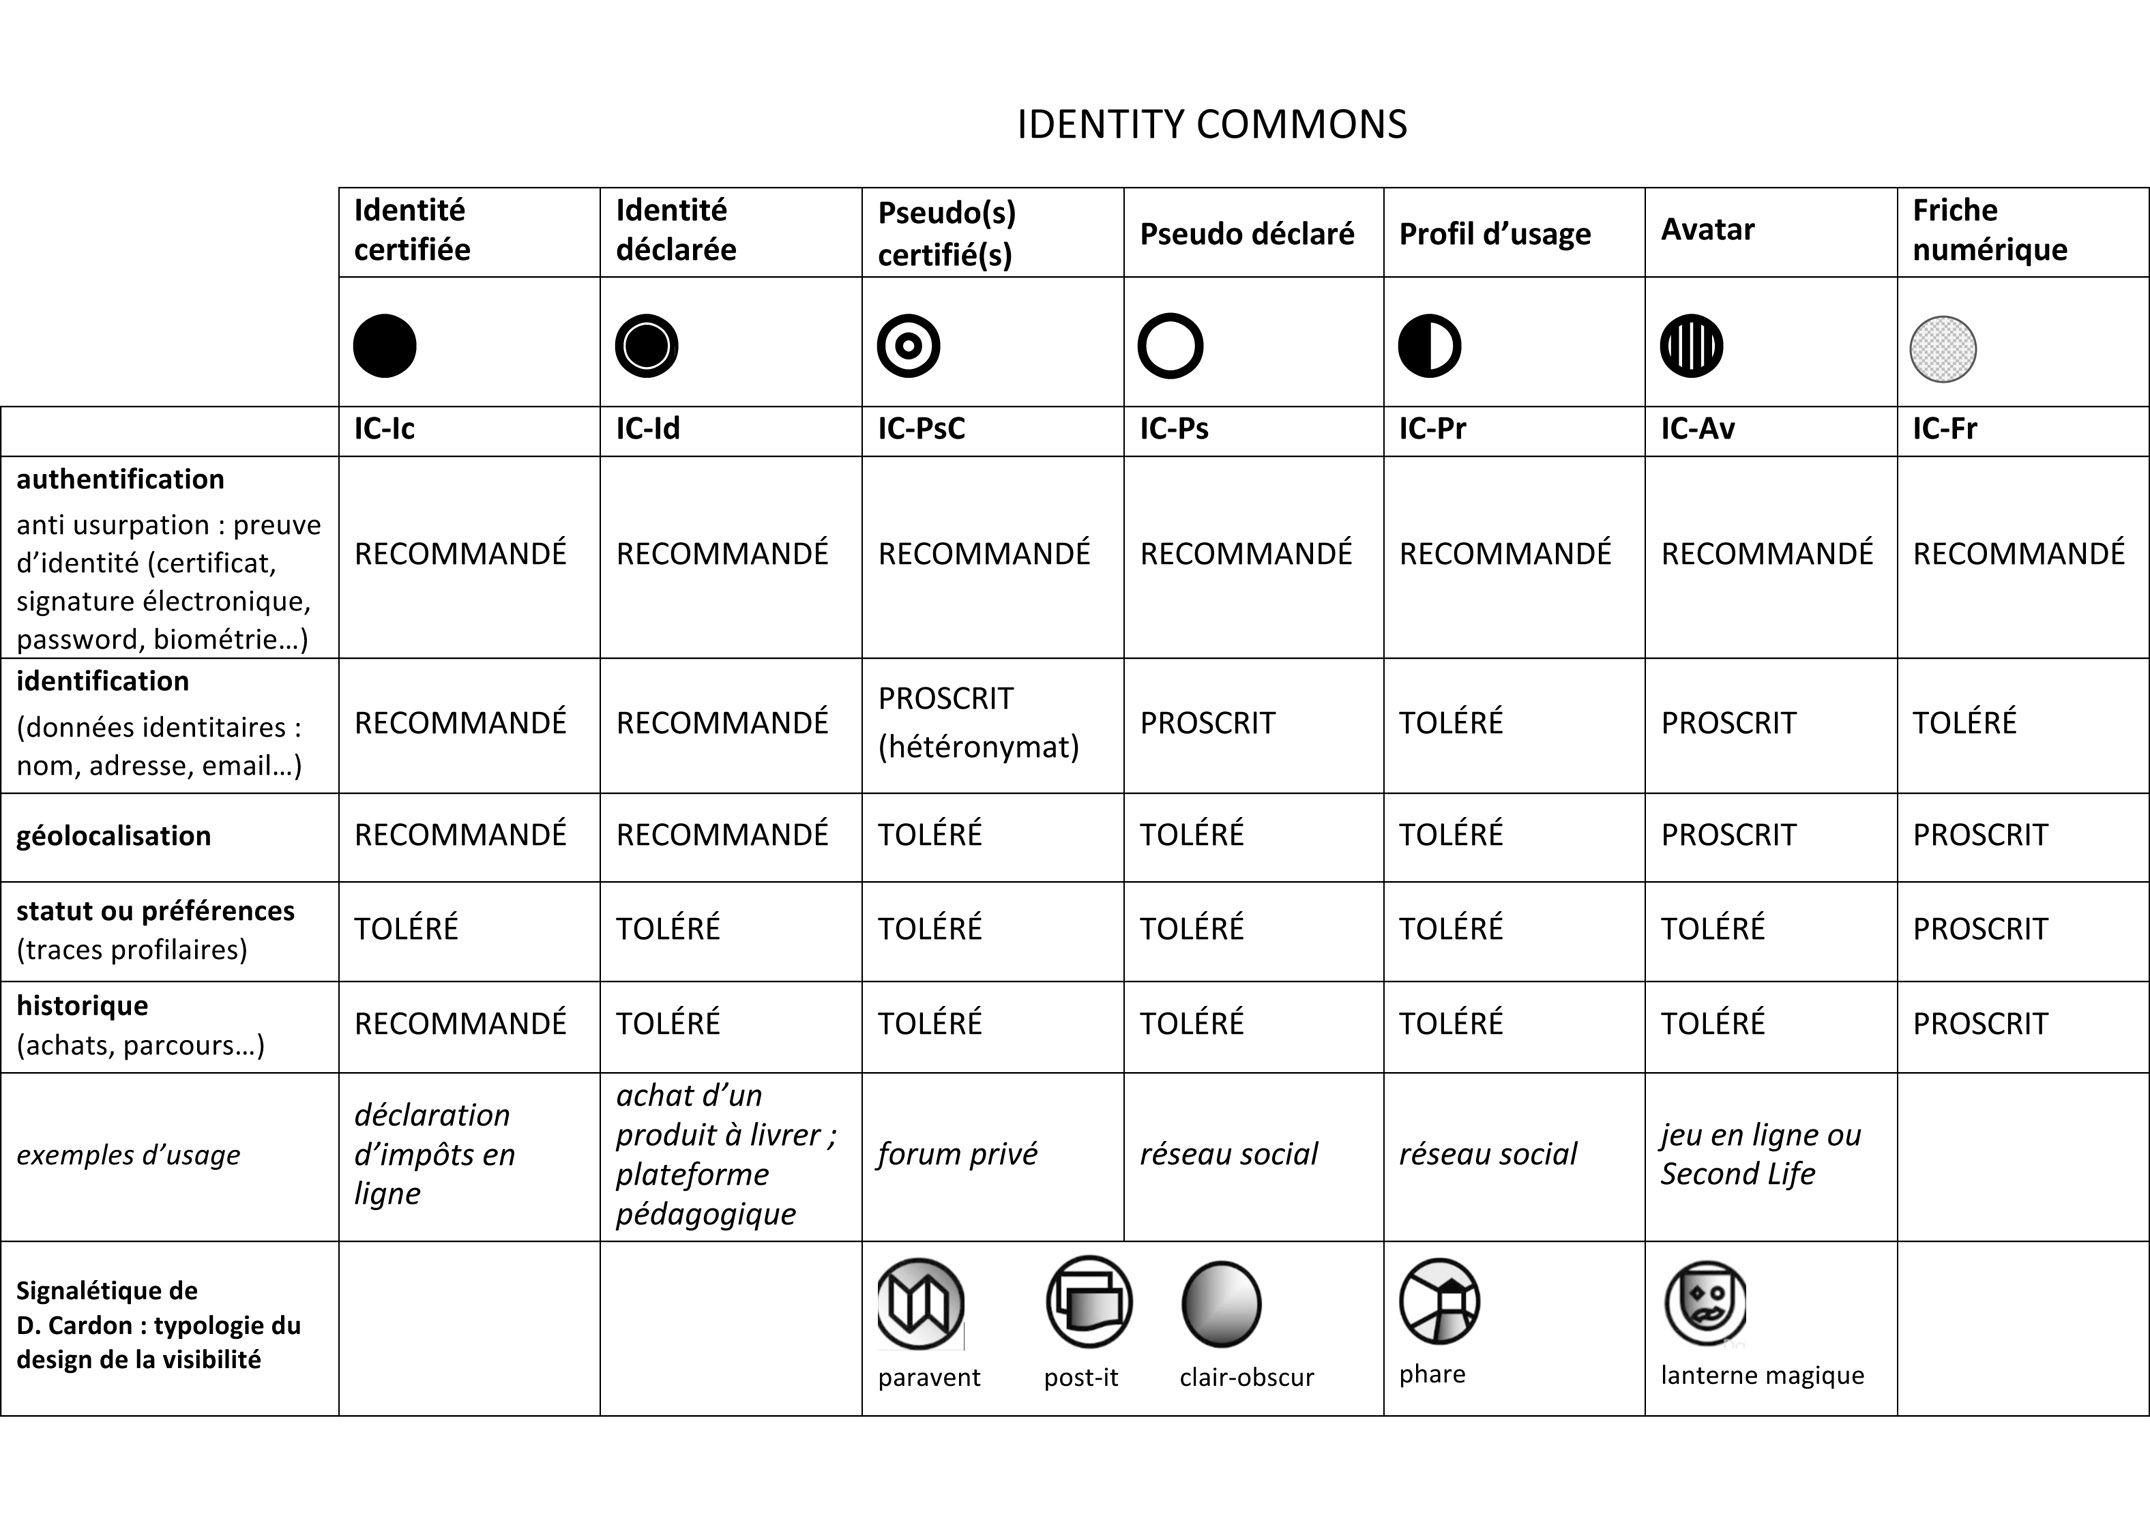 Microsoft Word - Identity-commons.doc